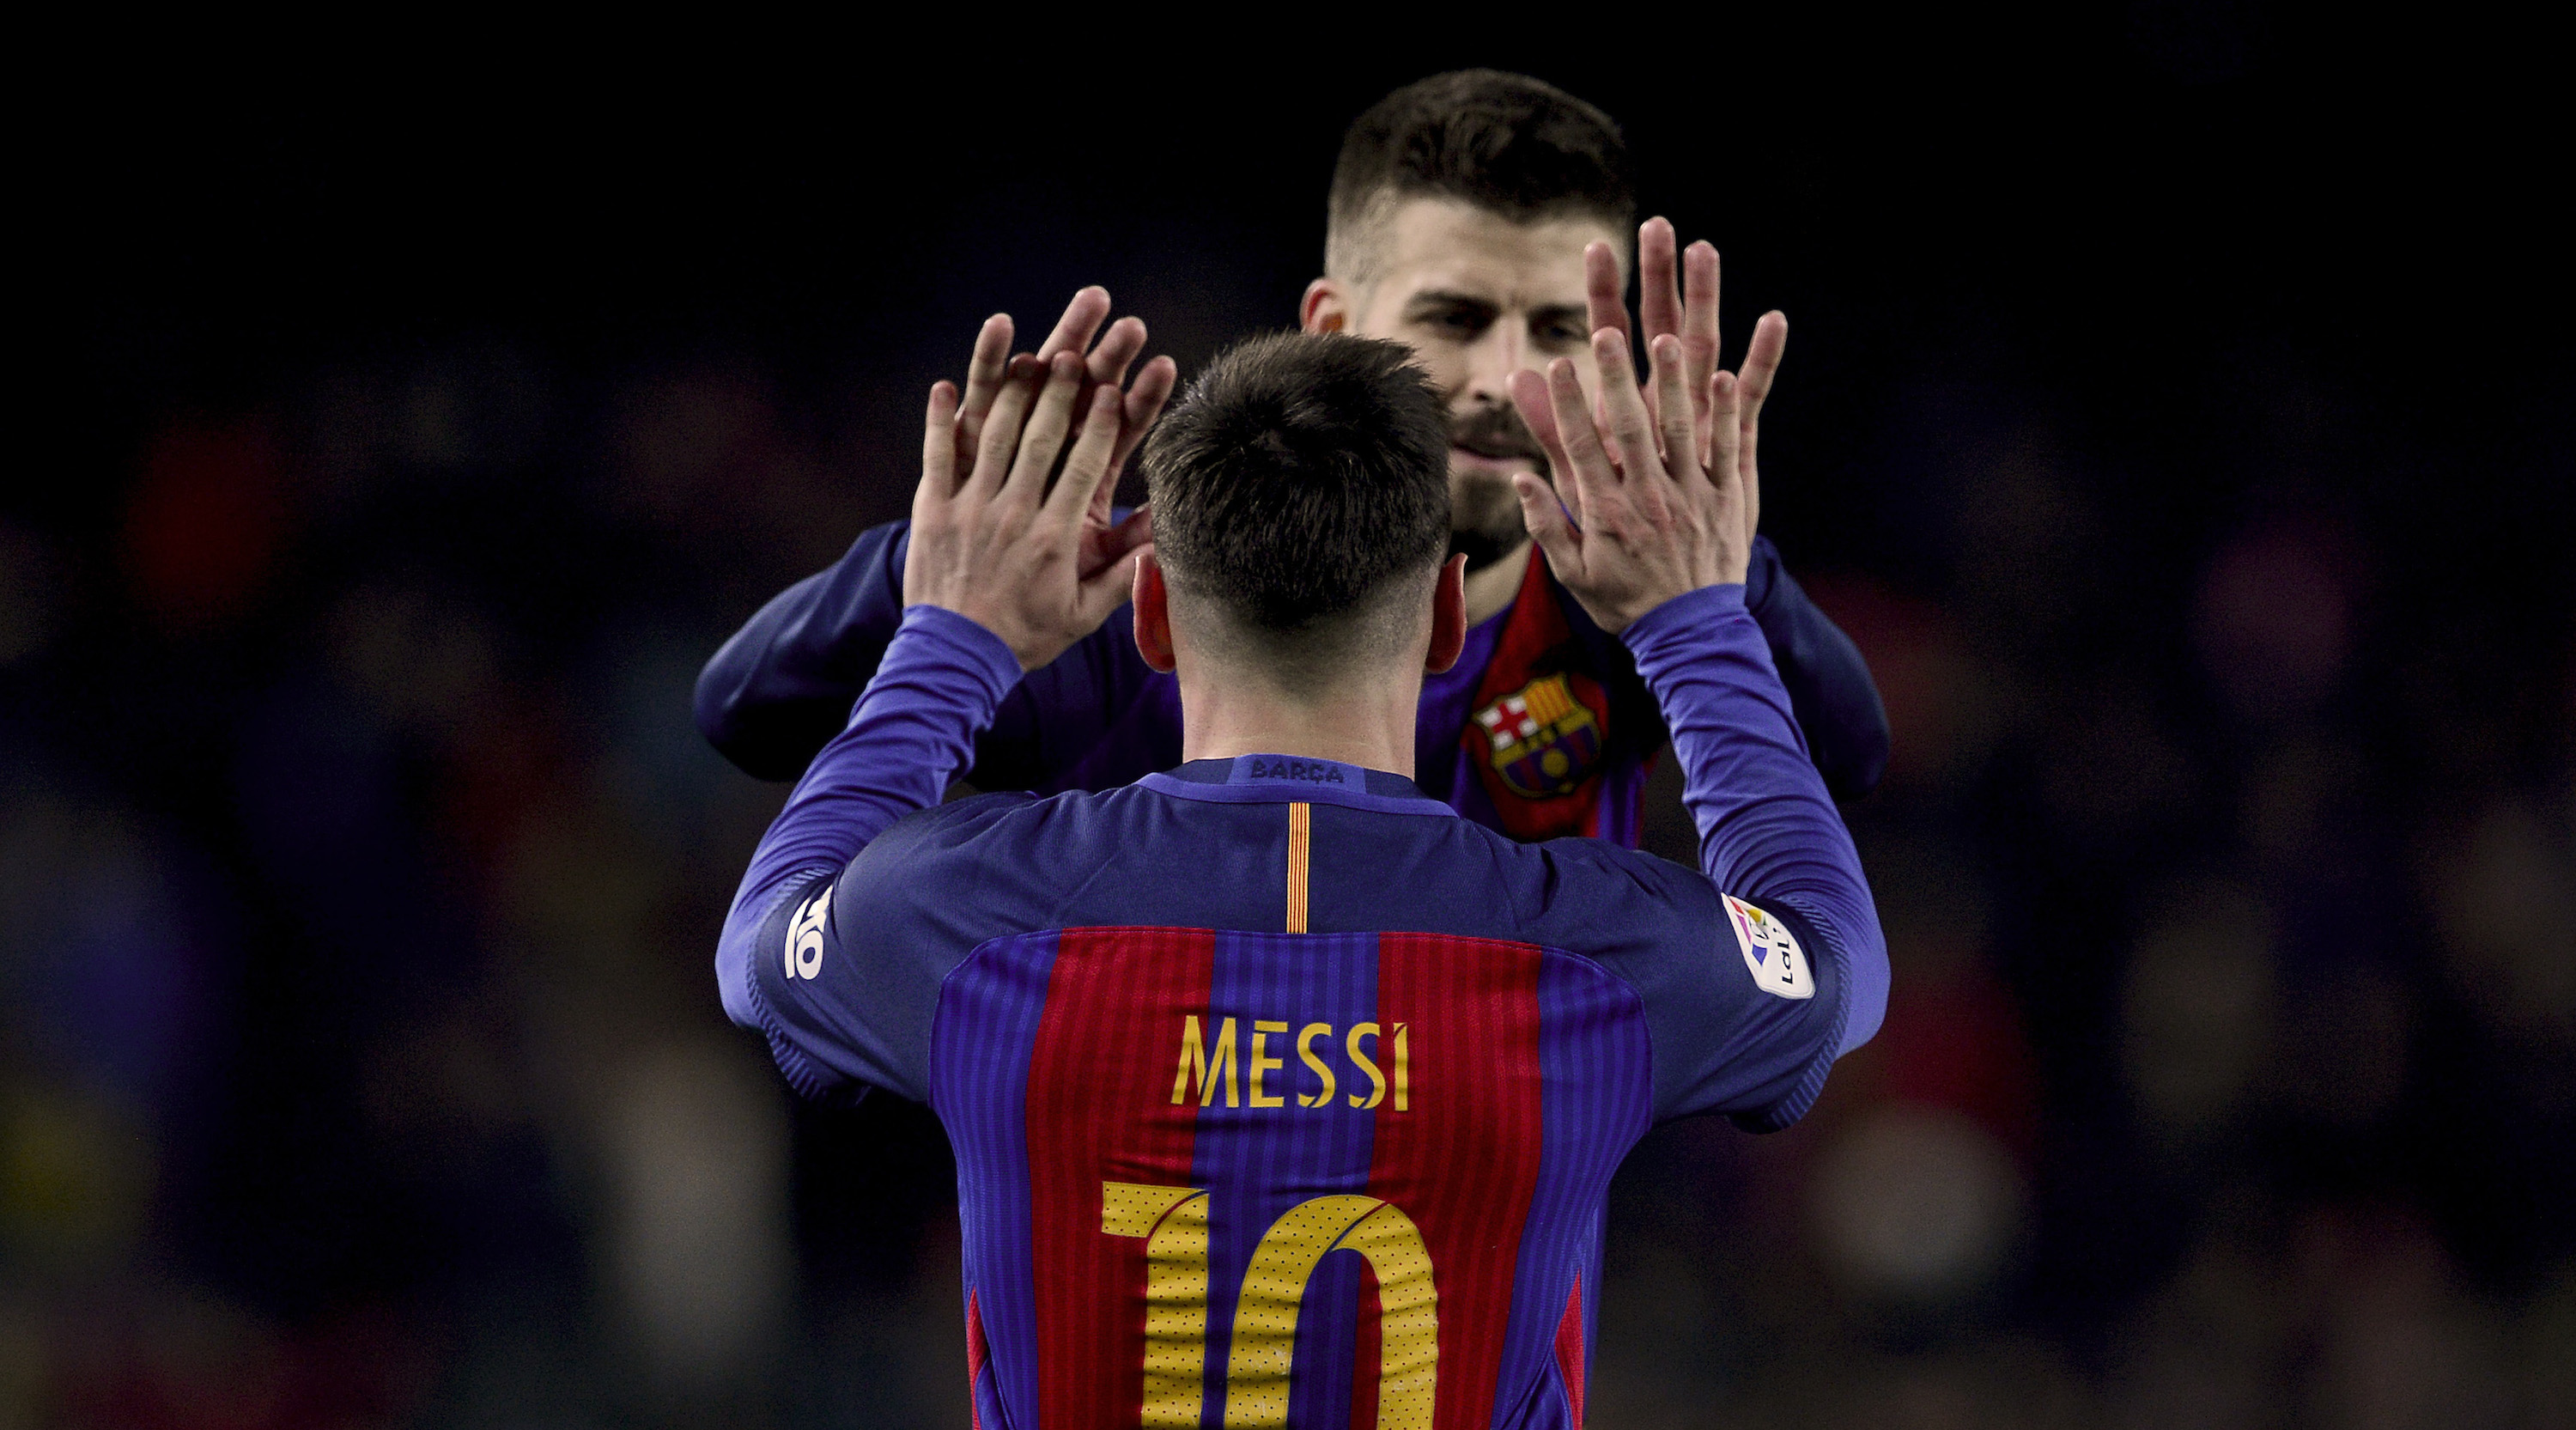 Barcelona's Argentinian forward Lionel Messi (L) celebrates a goal with teammate defender Gerard Pique during the Spanish league football match FC Barcelona vs RCD Espanyol at the Camp Nou stadium in Barcelona on December 18, 2016. / AFP / JOSEP LAGO (Photo credit should read JOSEP LAGO/AFP/Getty Images)